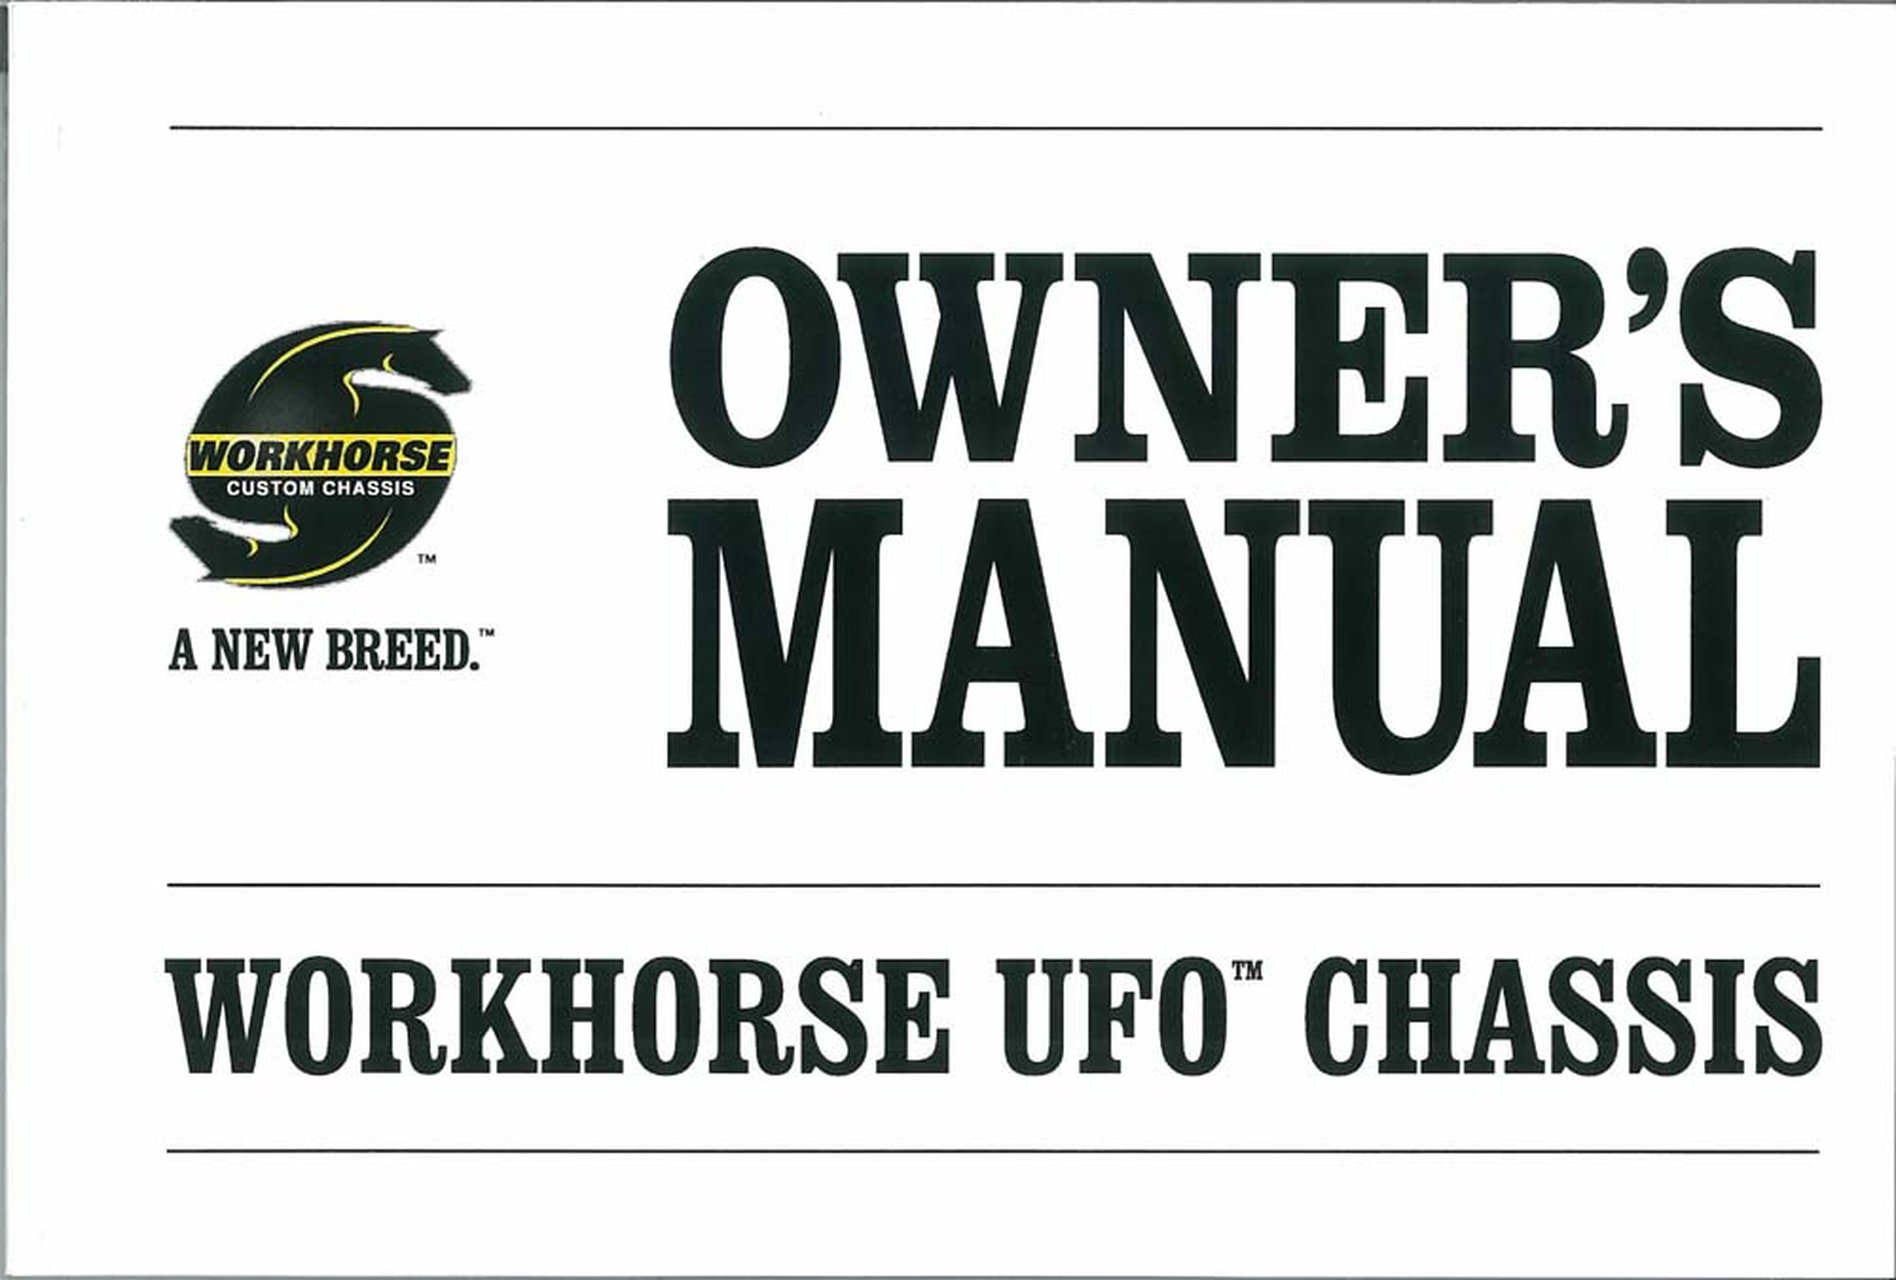 OEM Maintenance Owner's Manual Workhorse All Models Ufo